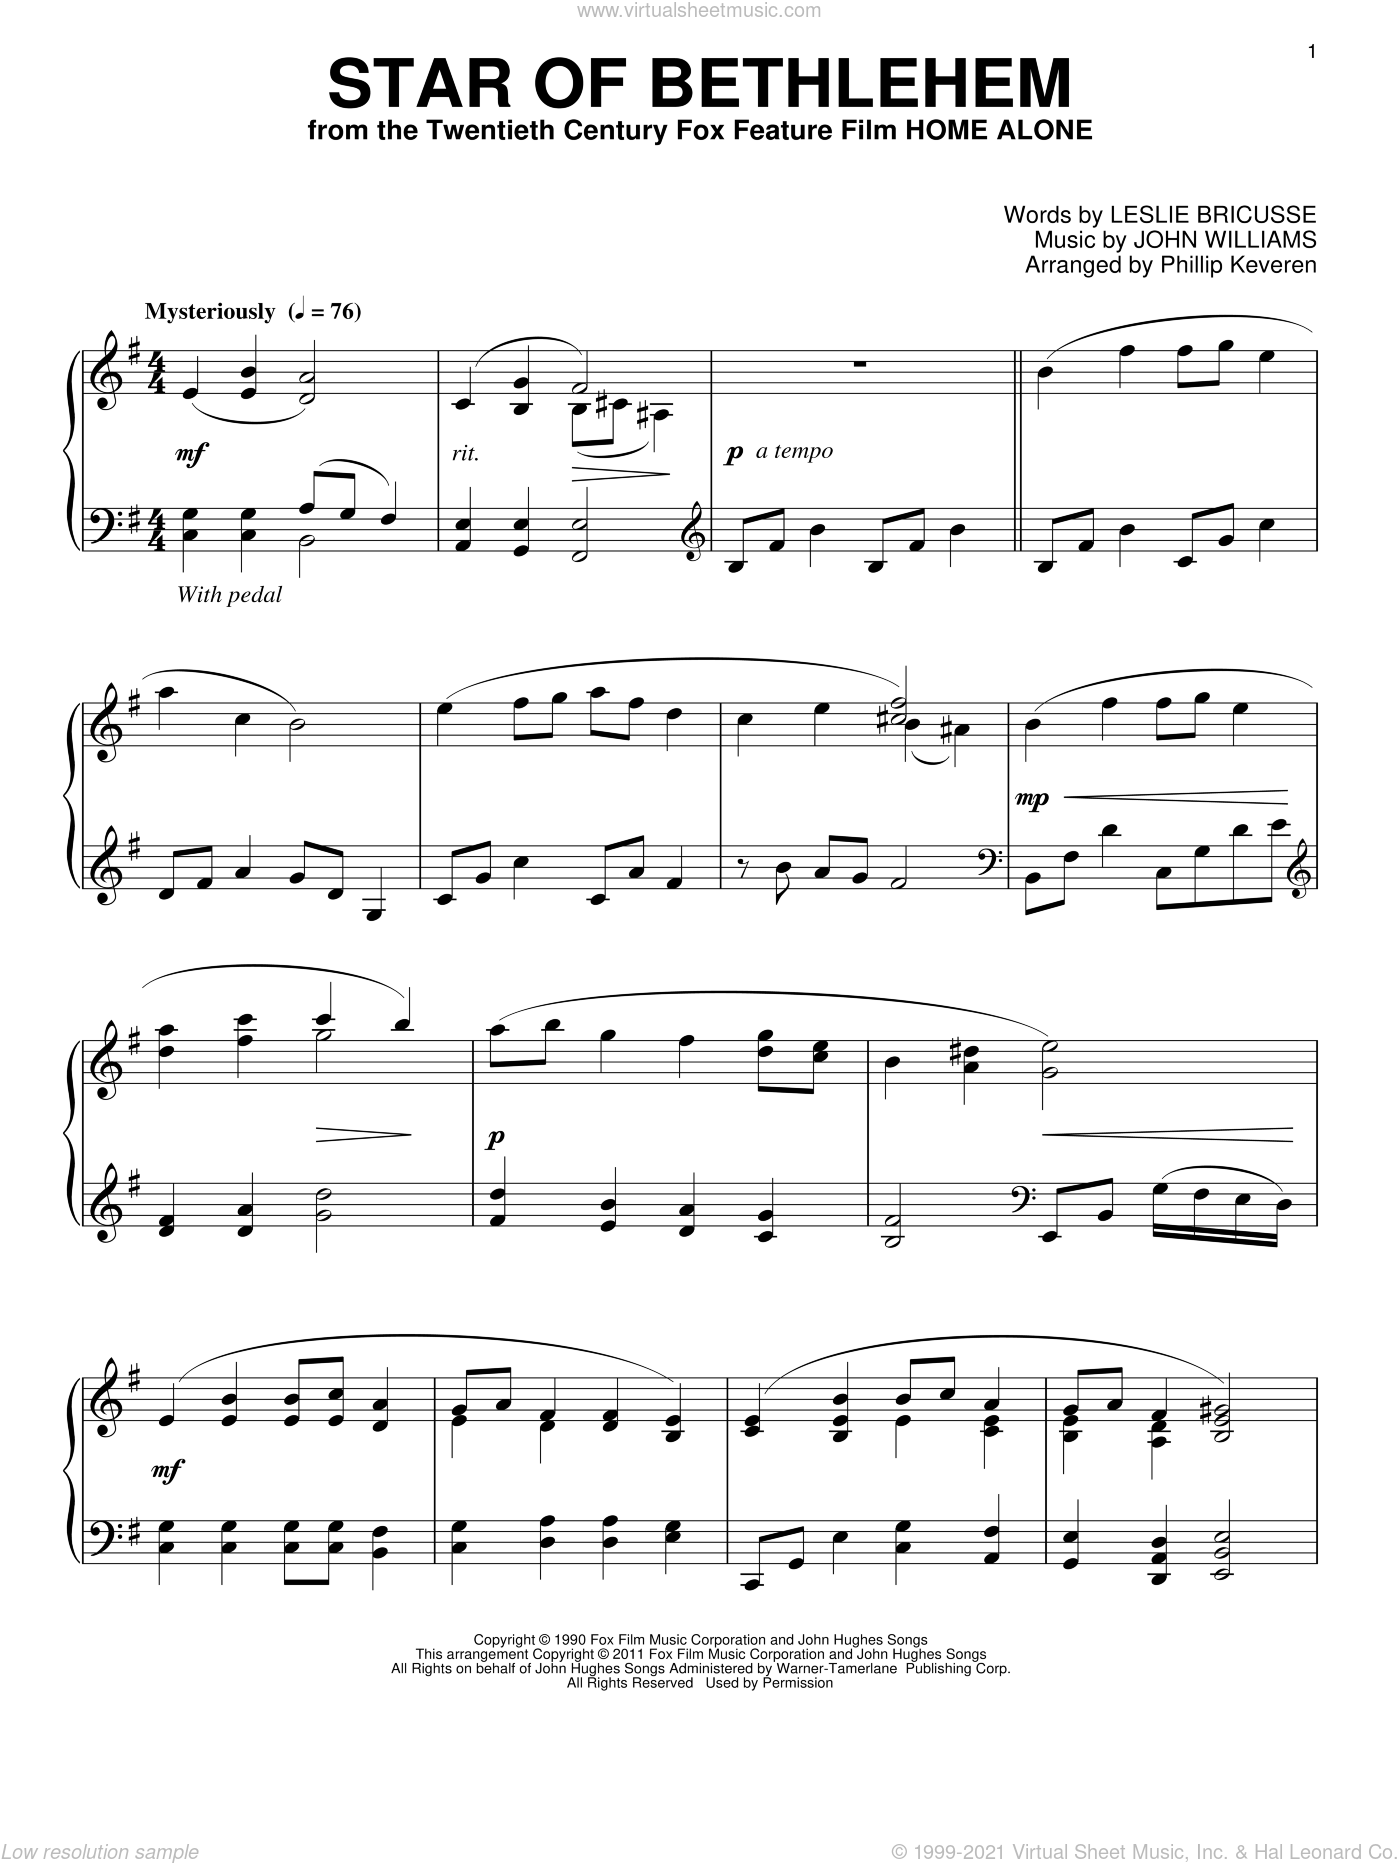 Star Of Bethlehem sheet music for piano solo by Leslie Bricusse, Phillip Keveren and John Williams, intermediate skill level